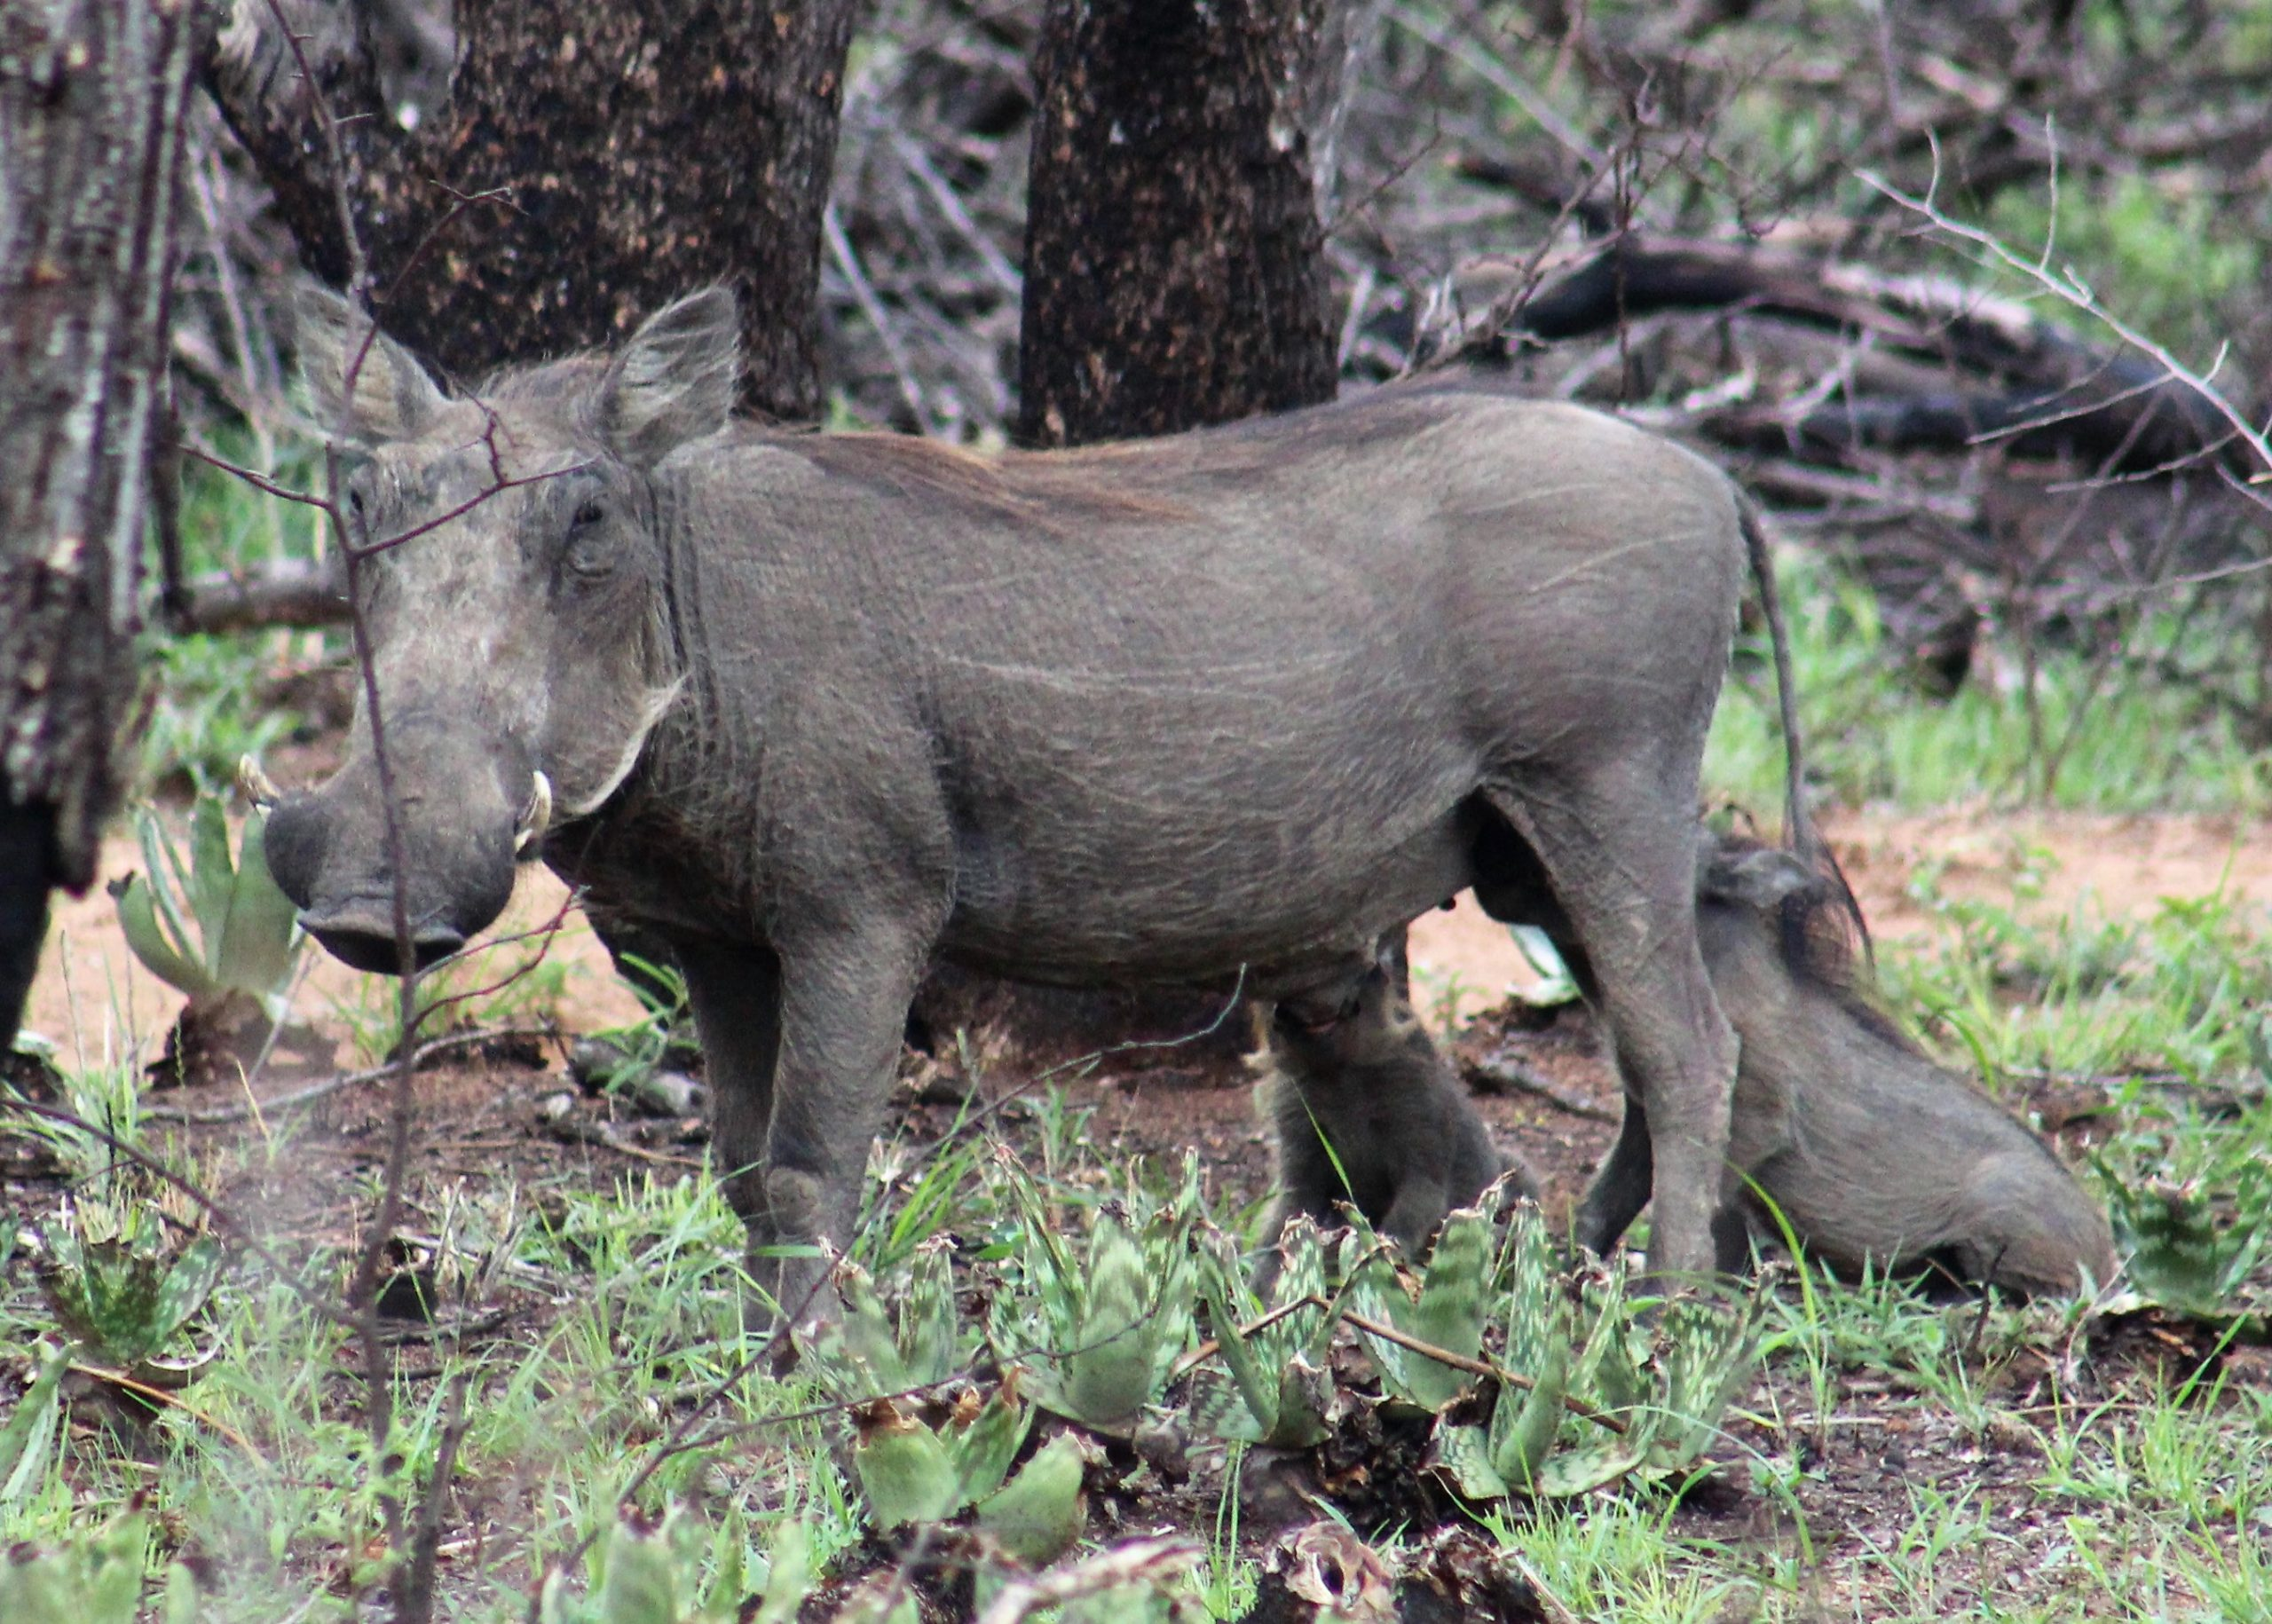 Warthogs on our game drive in South Africa